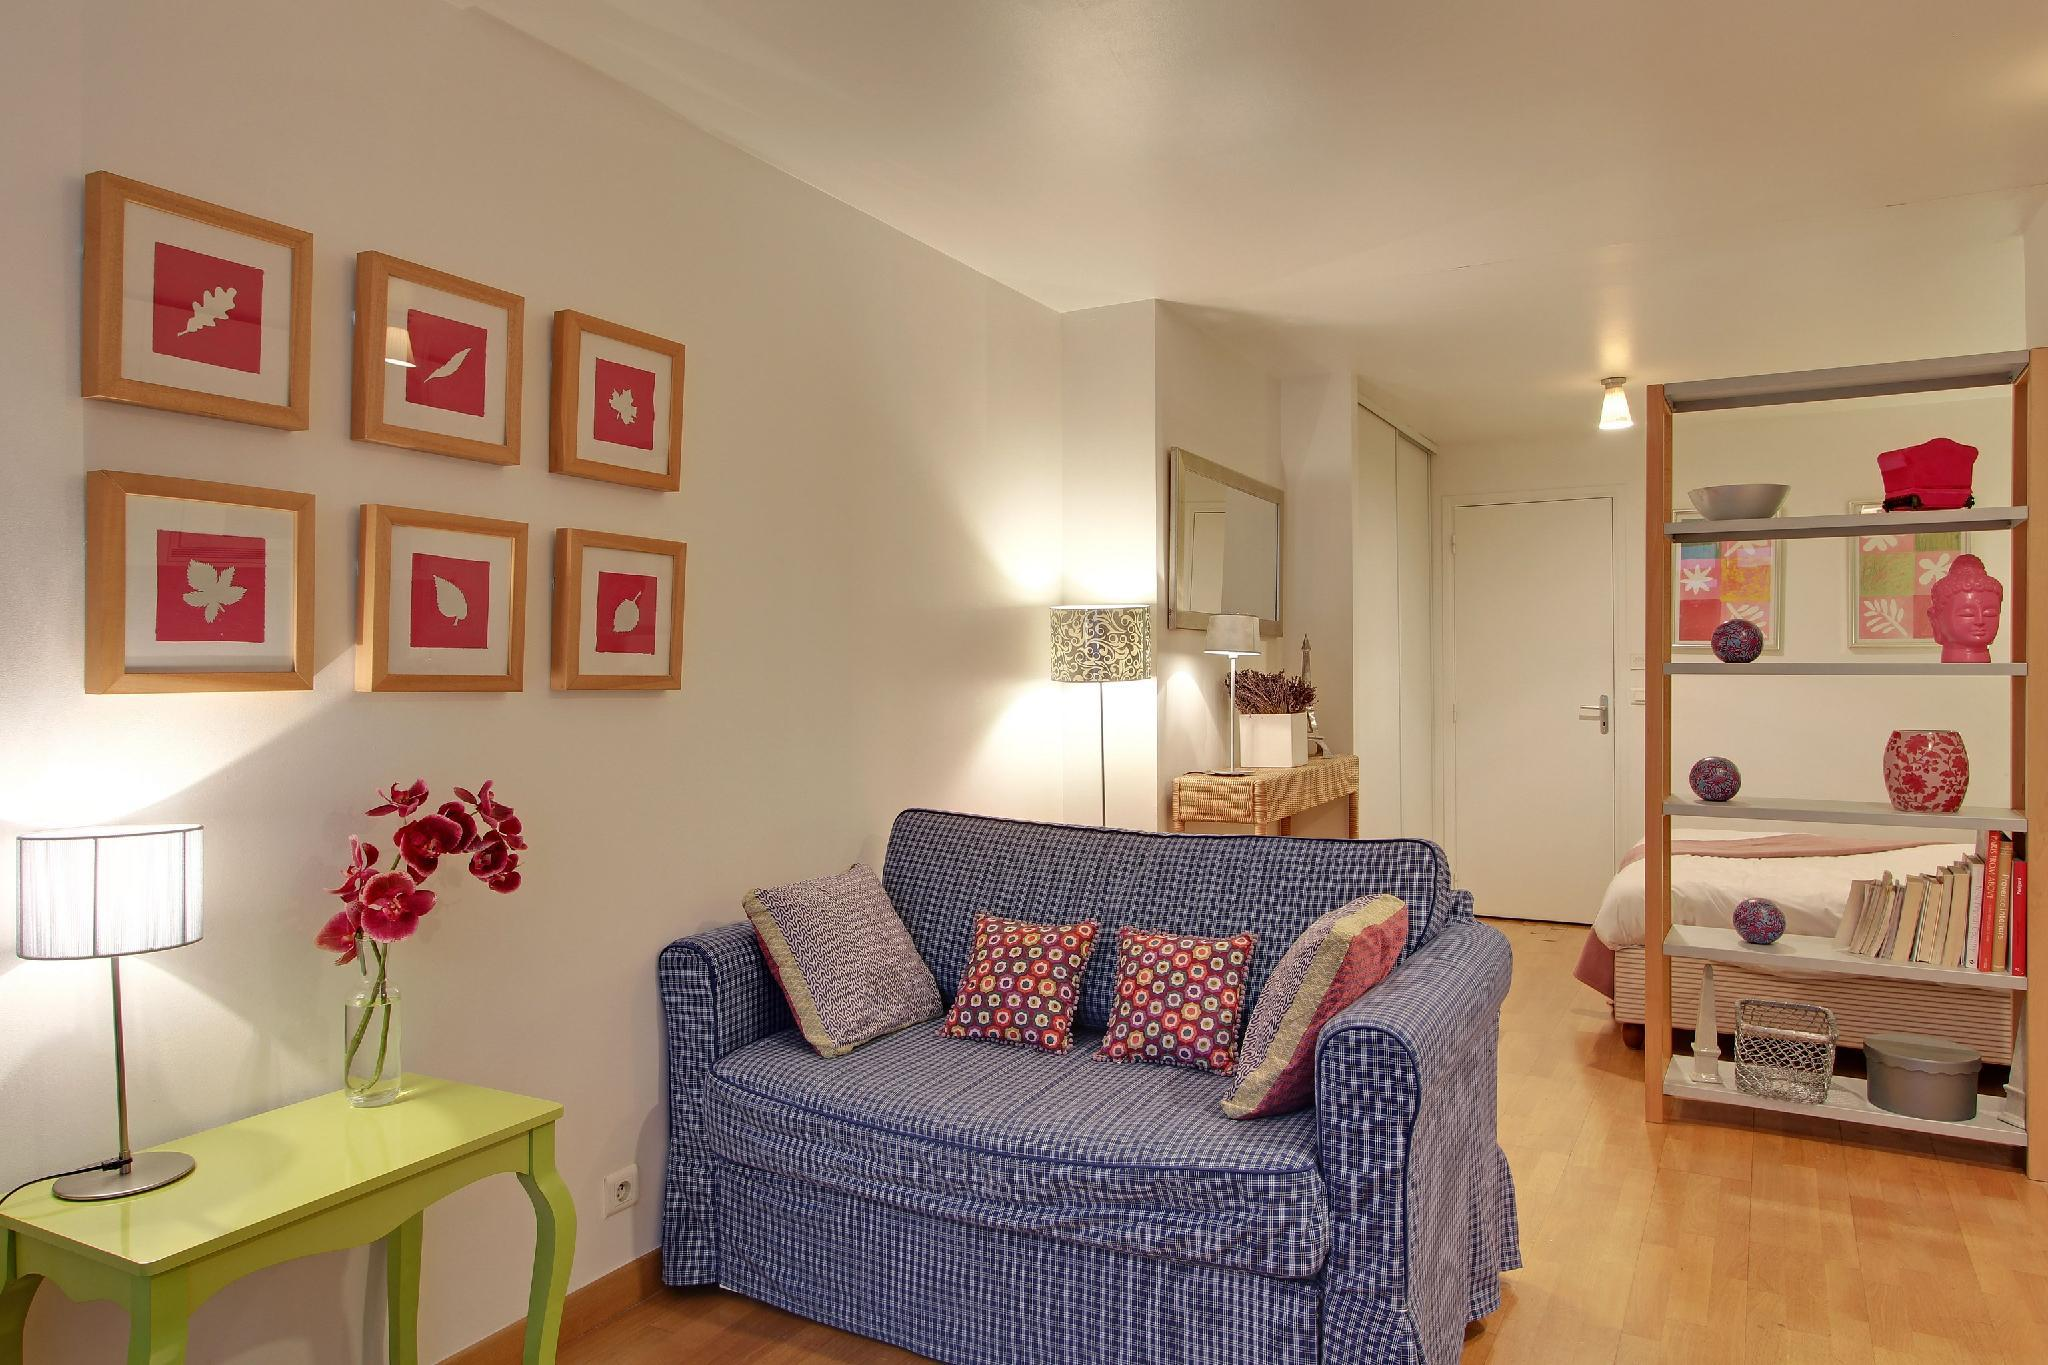 S09278 - Studio with patio for 3 people, Grand Boulevards